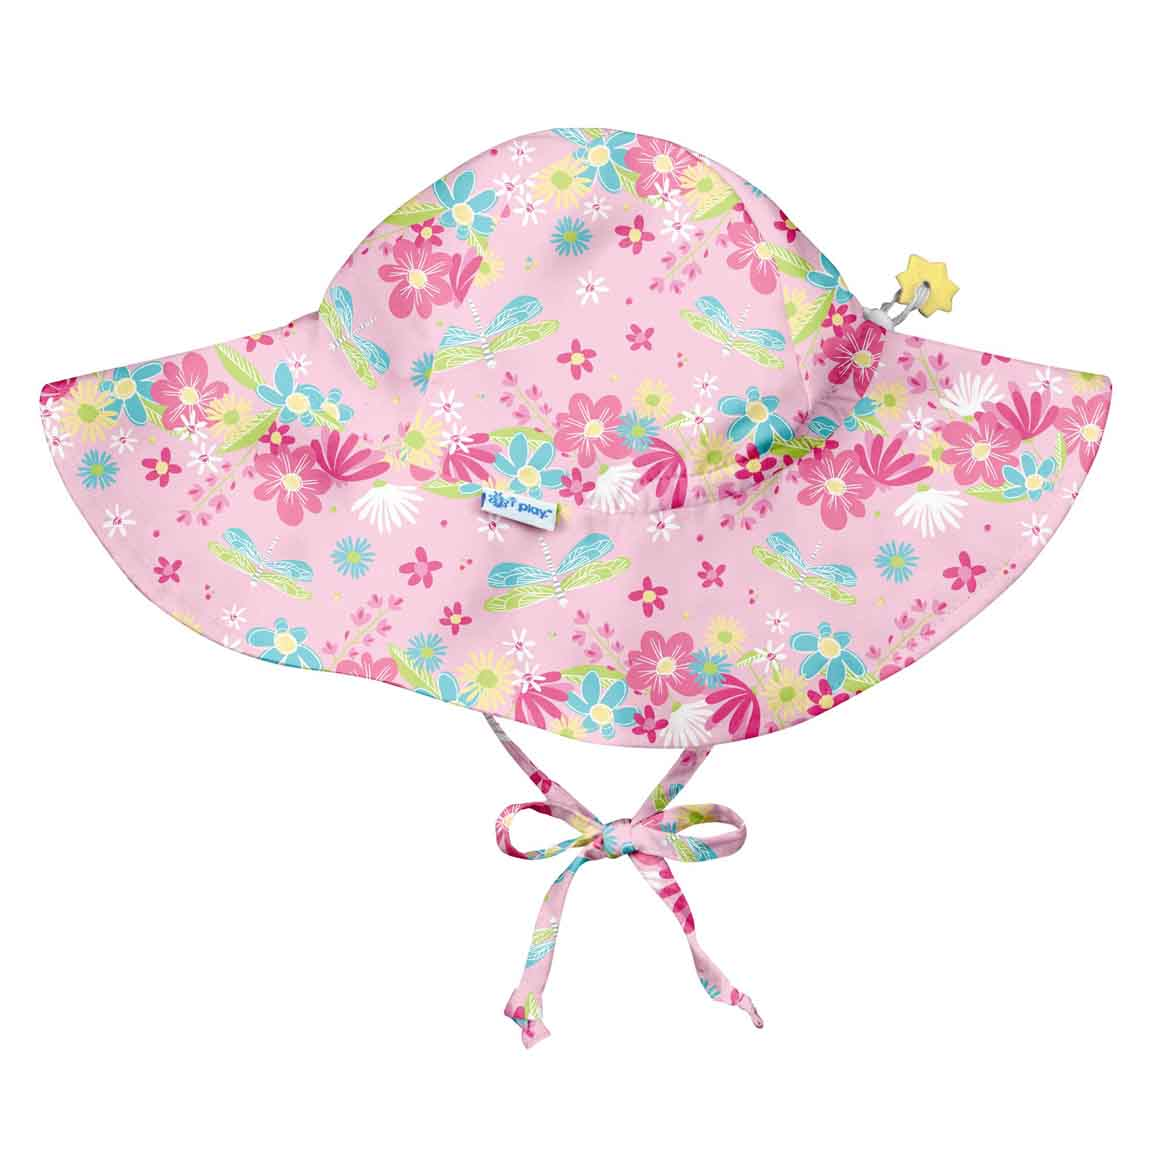 Brim Sun Protection Hat-Light Pink Dragonfly Floral | Trada Marketplace